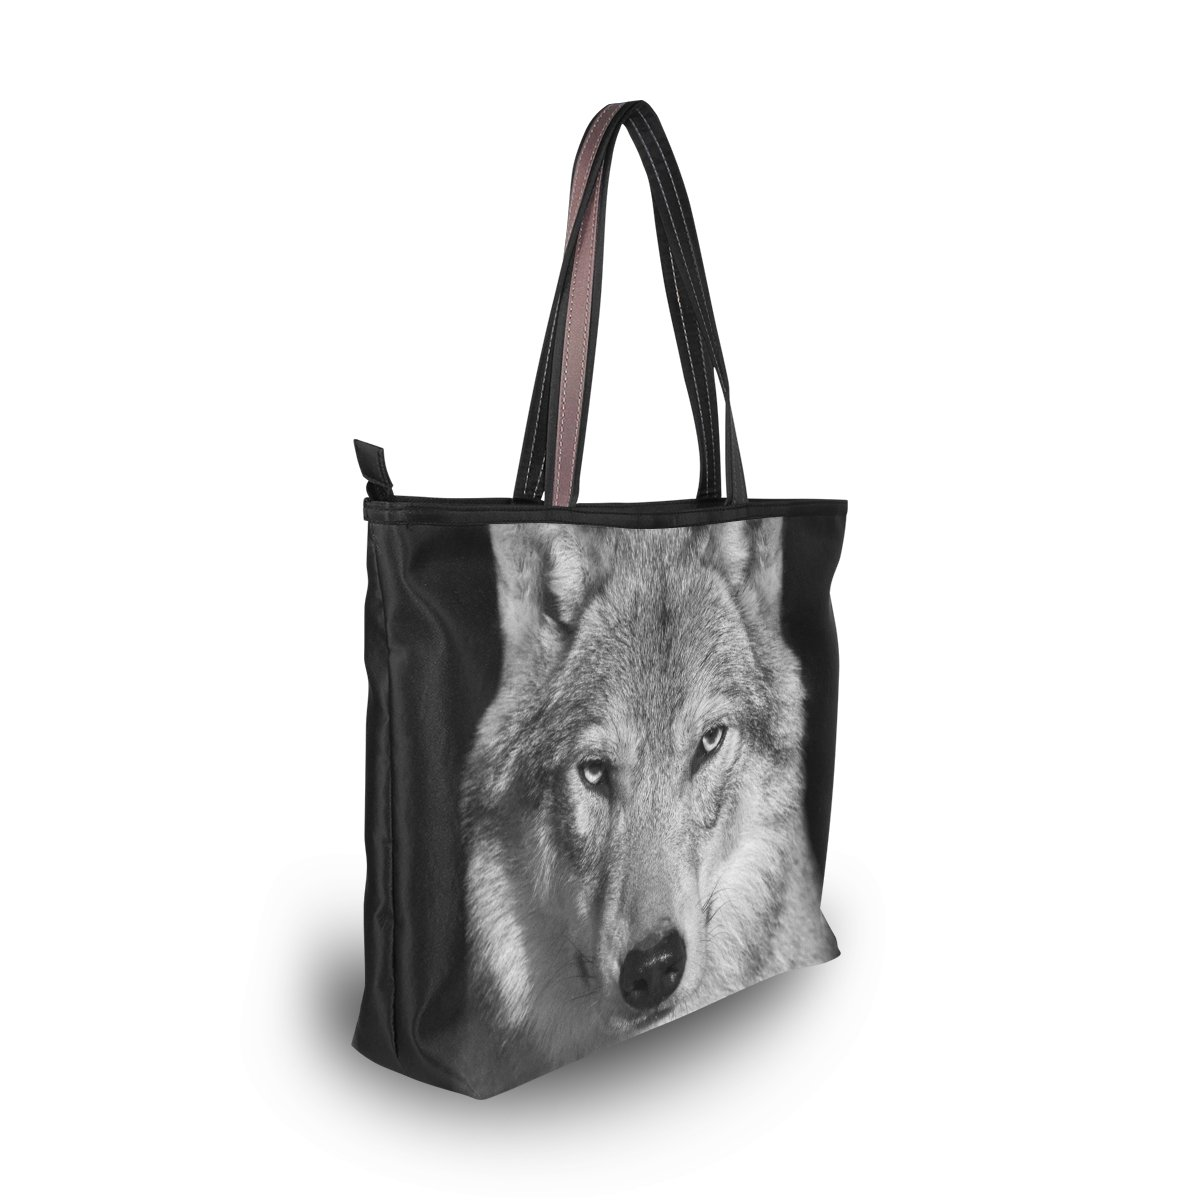 Borsa Lupo ALAZA it Animal Spalla Grande Borsa Amazon Wild Scarpe CO6q5U6w